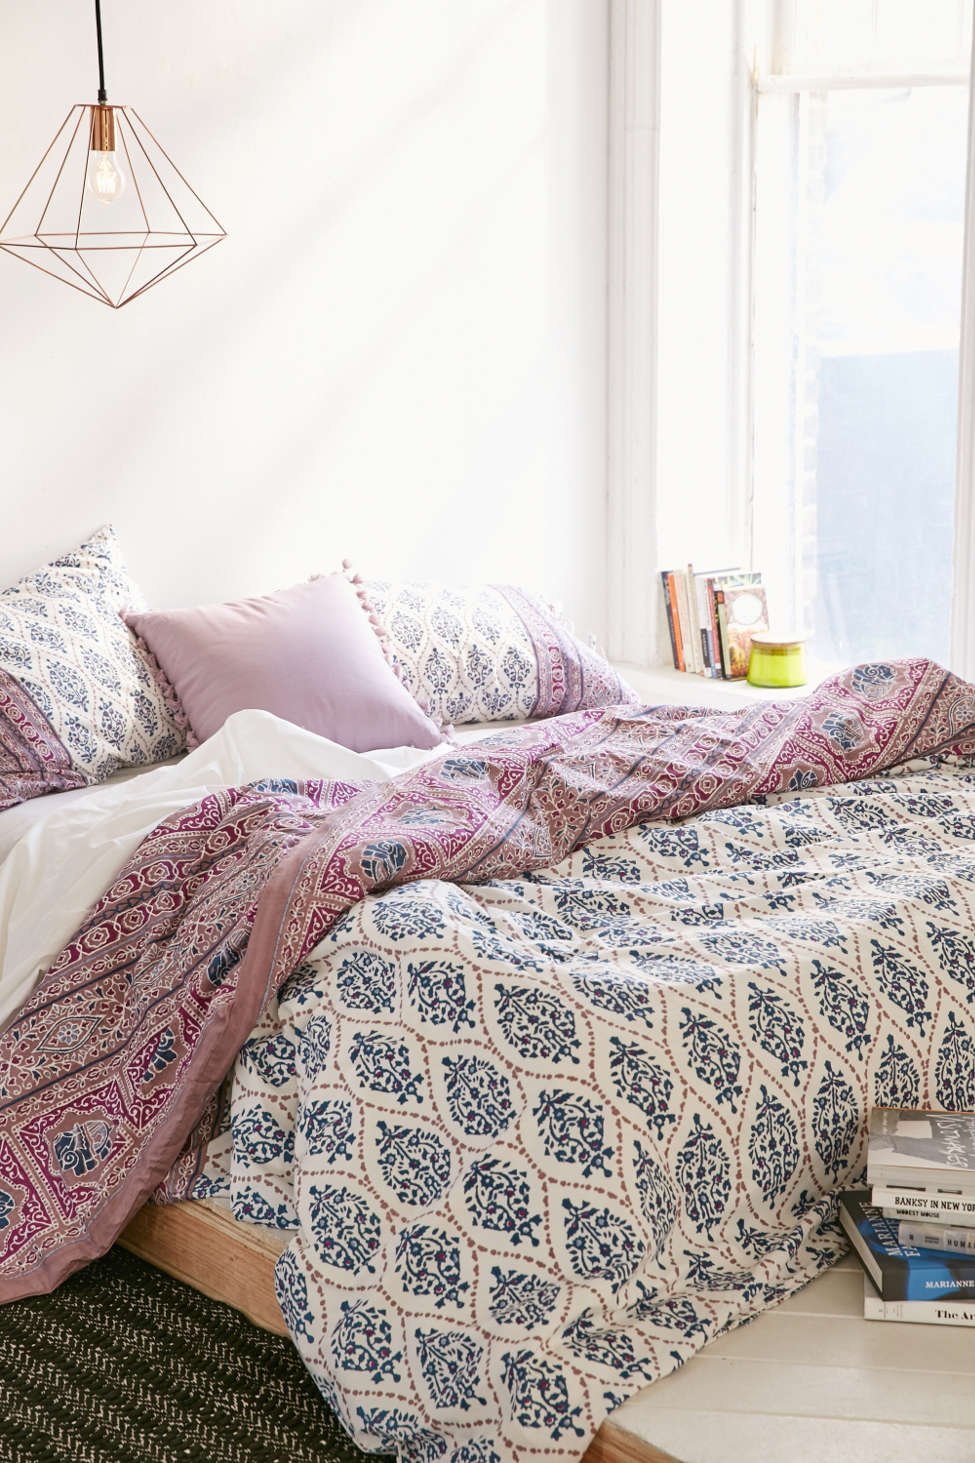 Plum & Bow Sofia Block Duvet Cover | Urban Outfitters